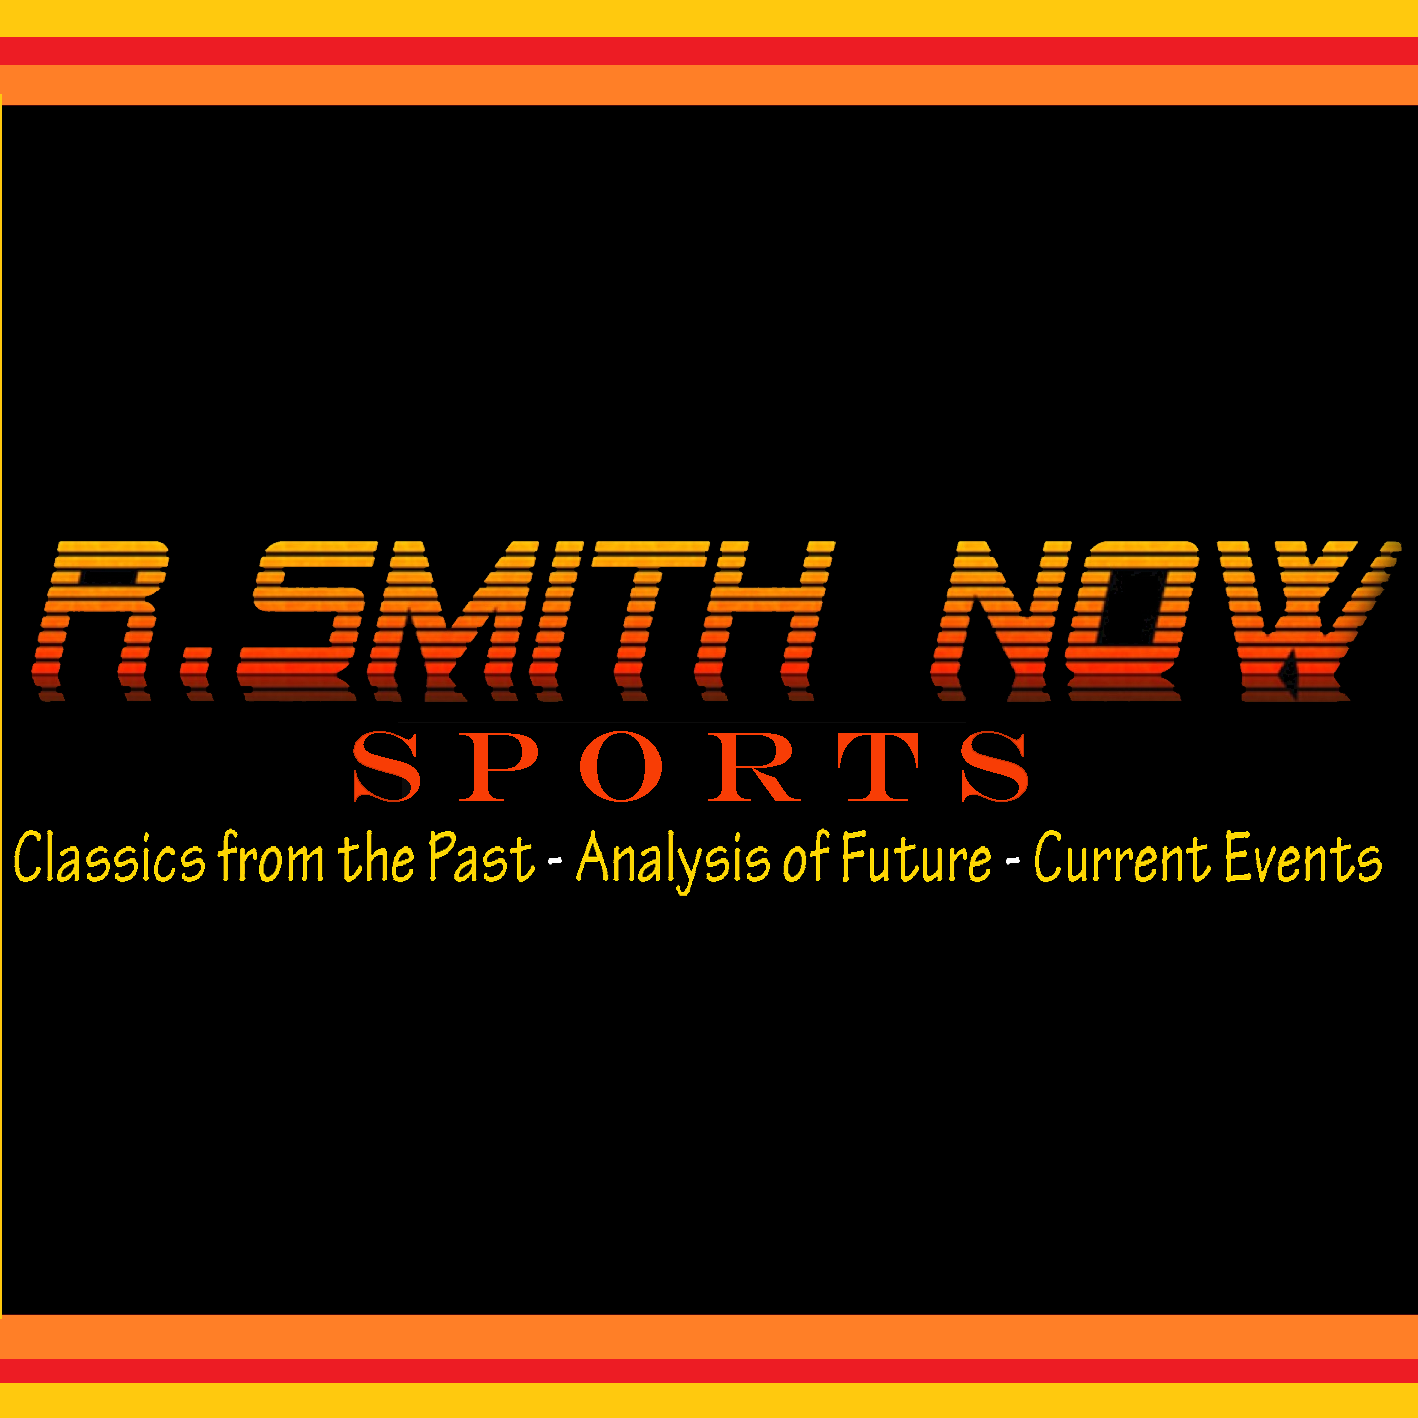 This channel focuses on a variety of sports media of